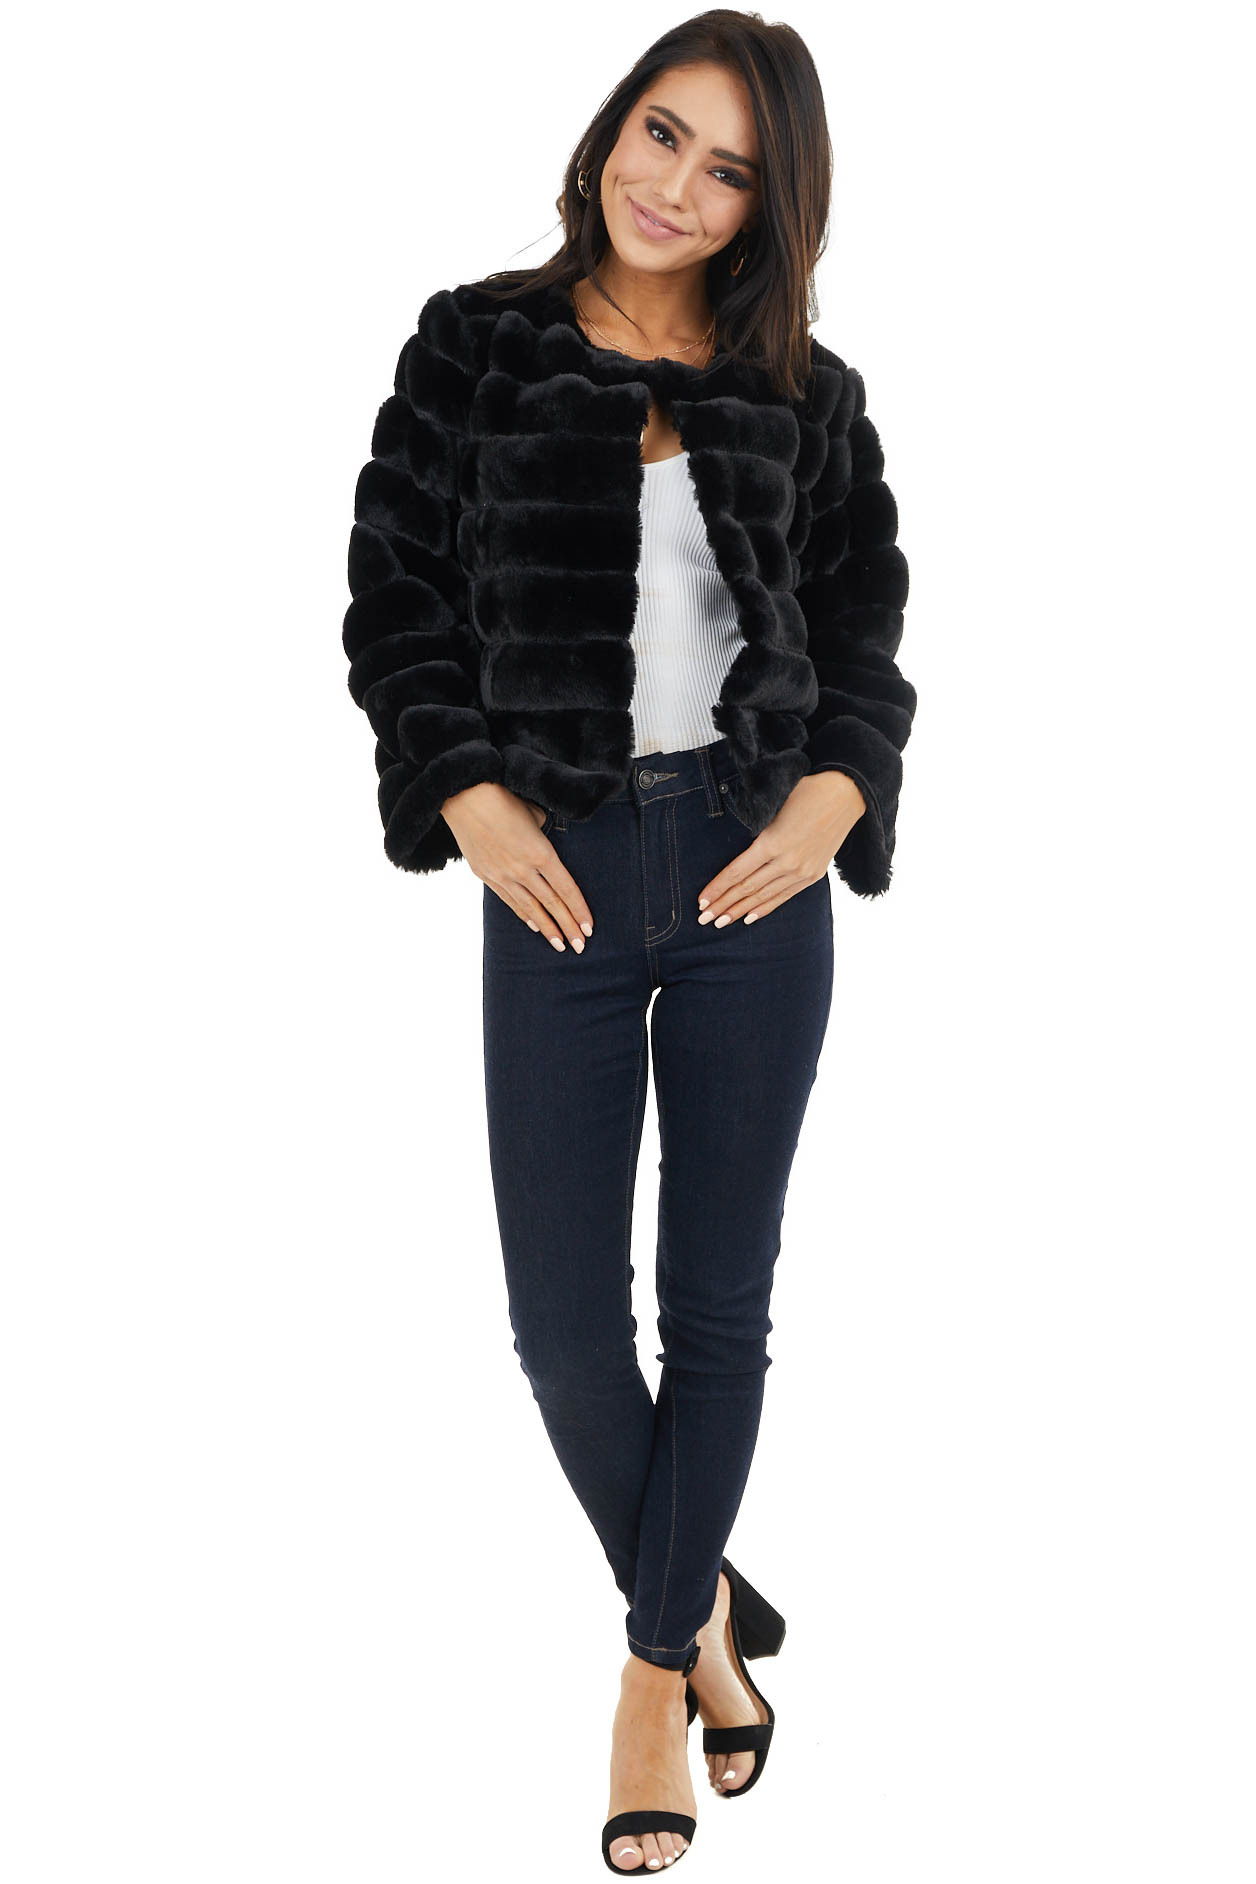 Black Faux Fur Open Front Jacket with Textured Stripes